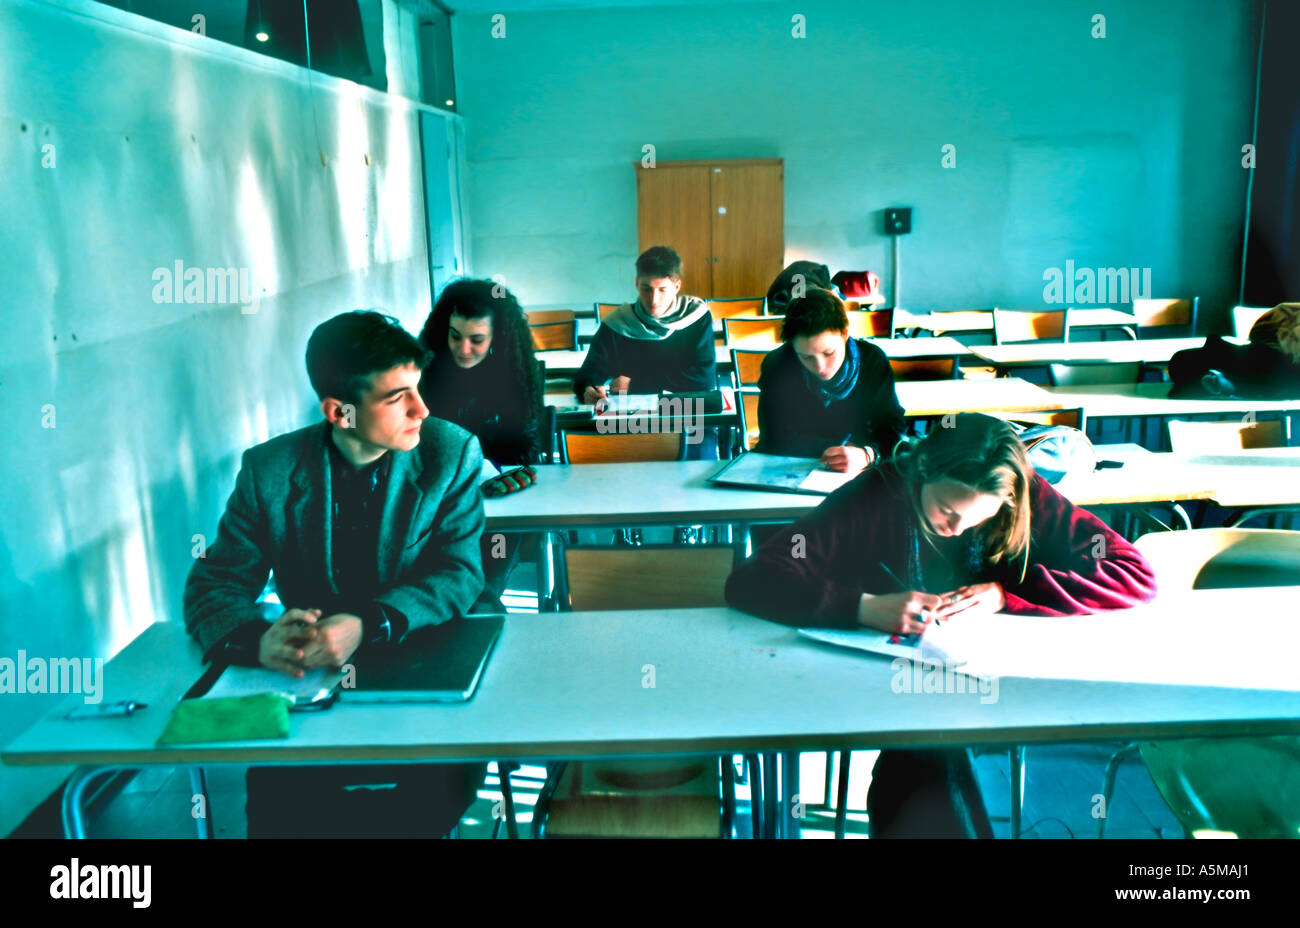 Education, Paris France, Mixed Group Gender Race, French Teens in High School Classroom, Group Teens Studying, Lycee exam, Schools from around world - Stock Image